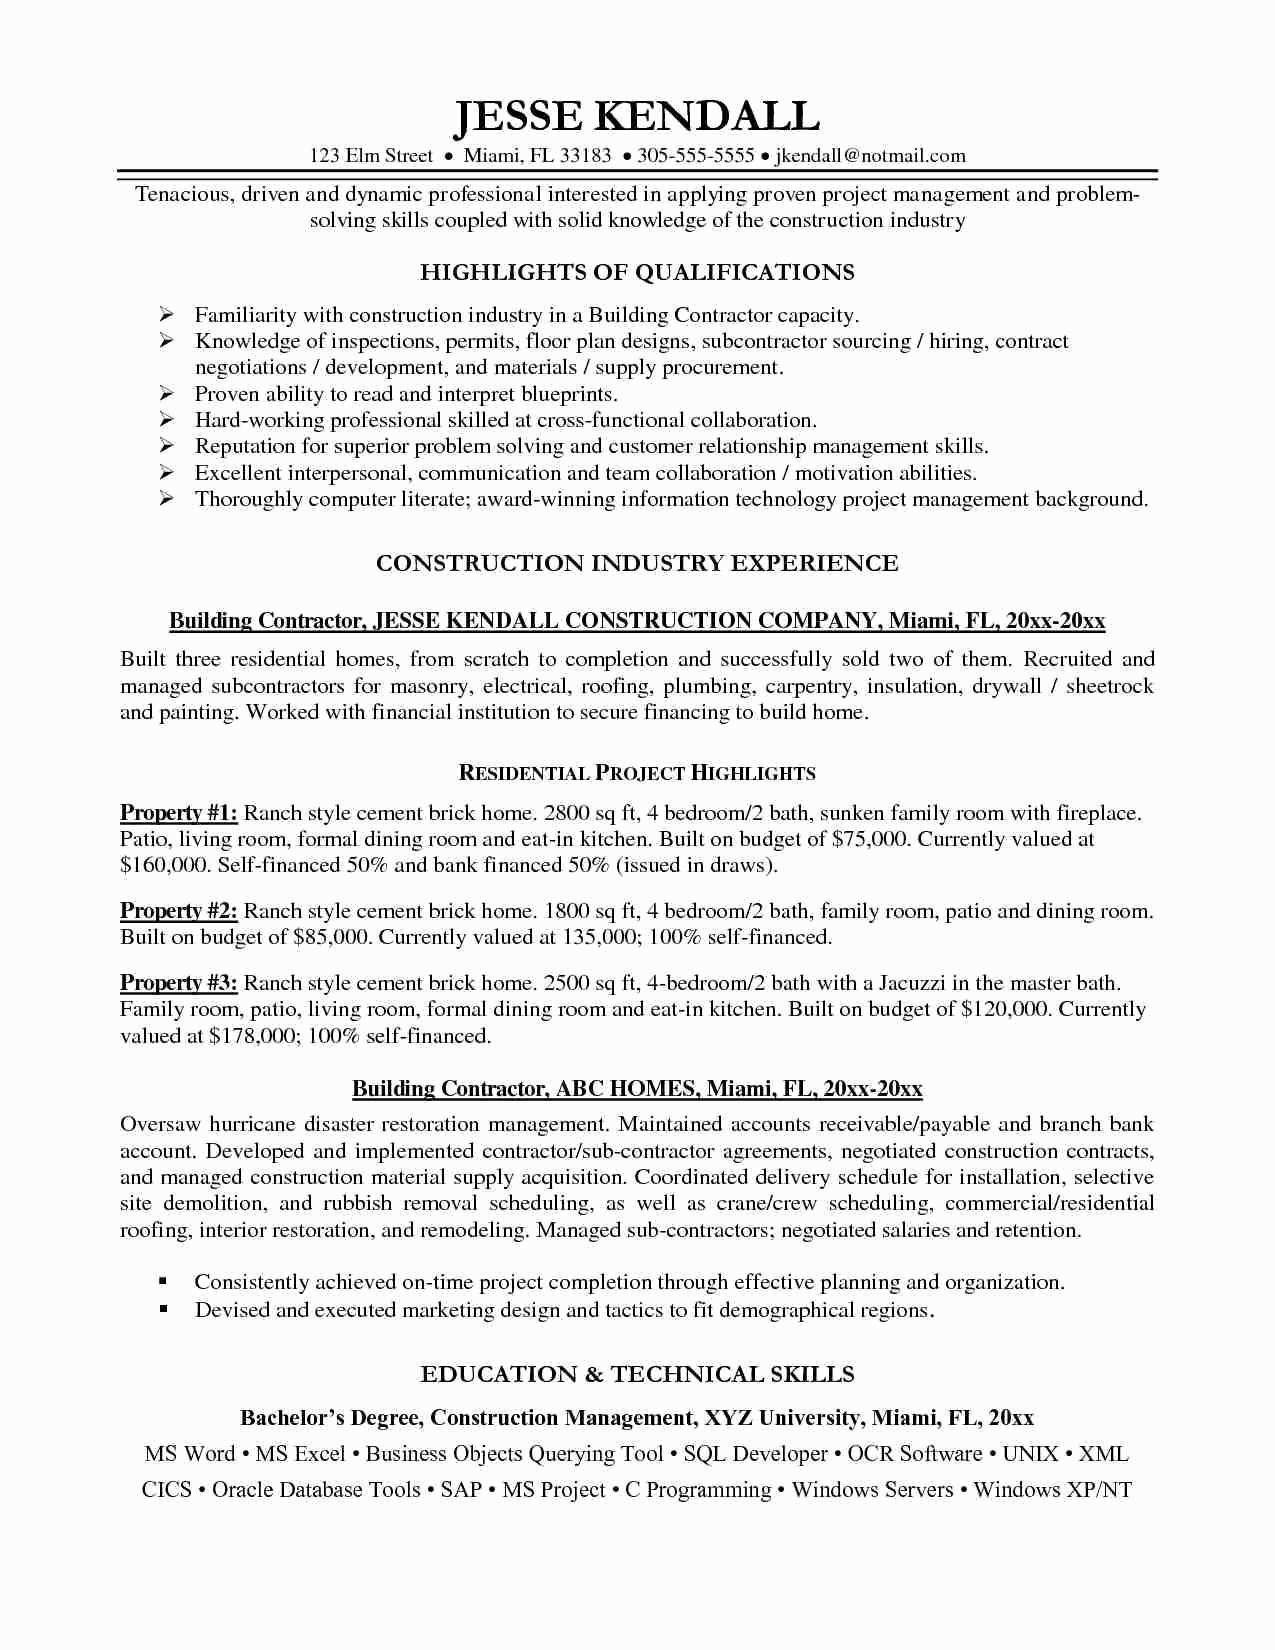 Self Employed Contractor Resume New 9 General Contractor Resume Template Examples Printable In 2020 Paper Writing Service Current Job Resume